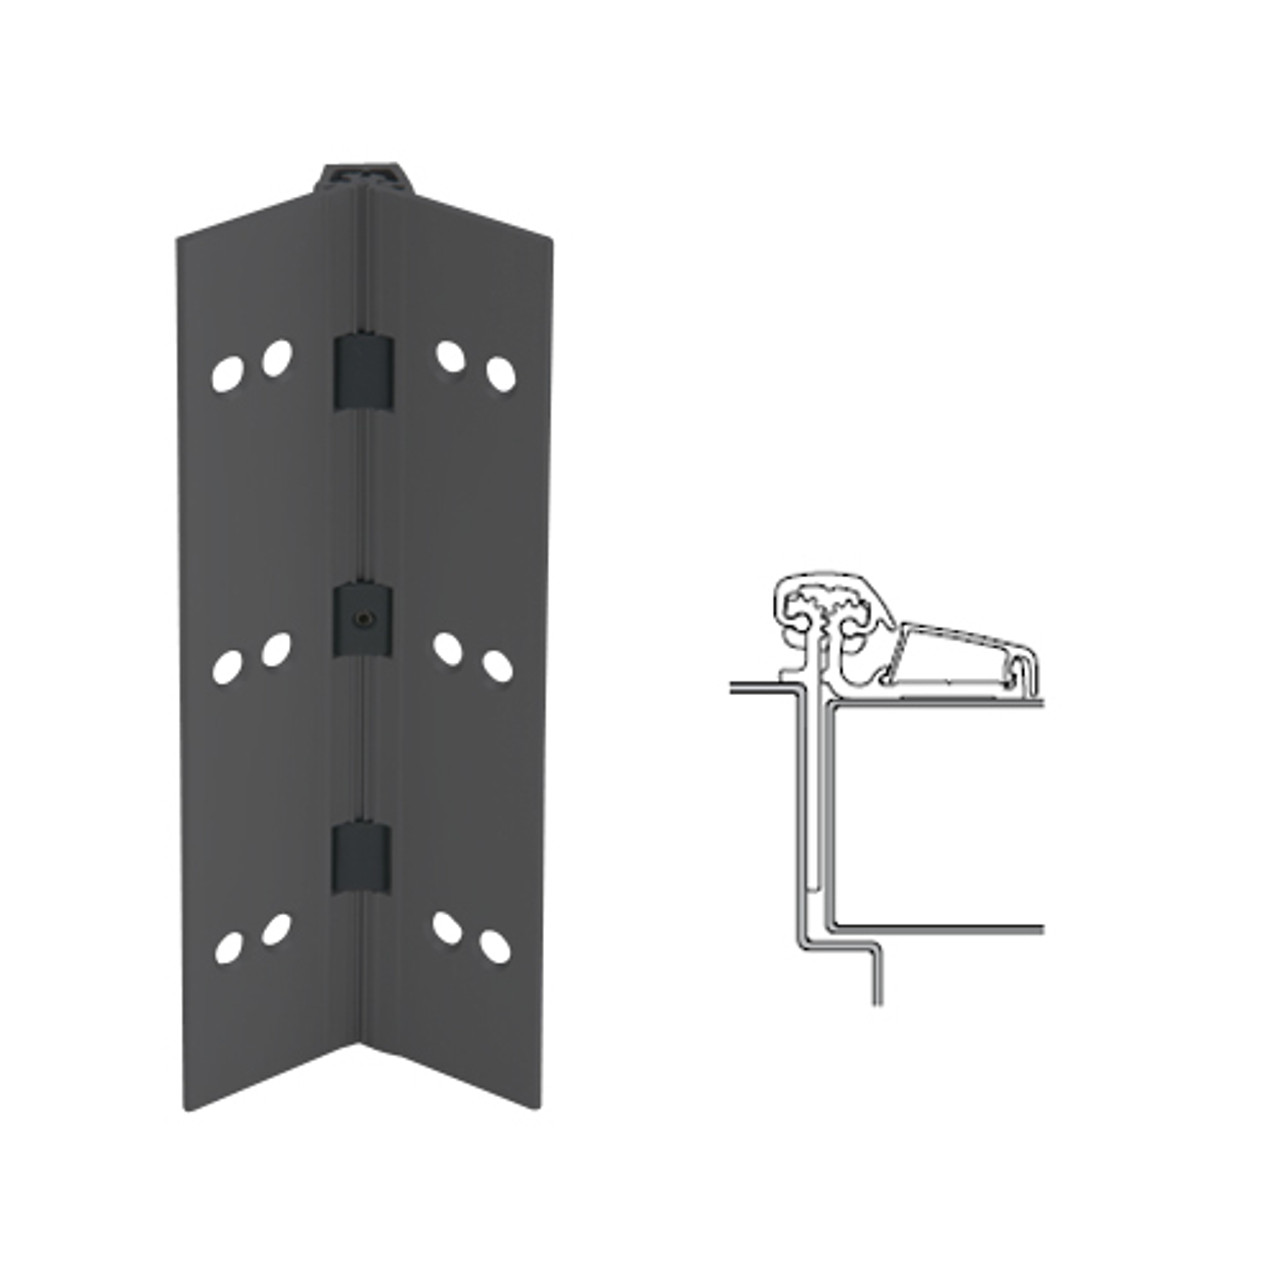 053XY-315AN-95-TFWD IVES Adjustable Half Surface Continuous Geared Hinges with Thread Forming Screws in Anodized Black